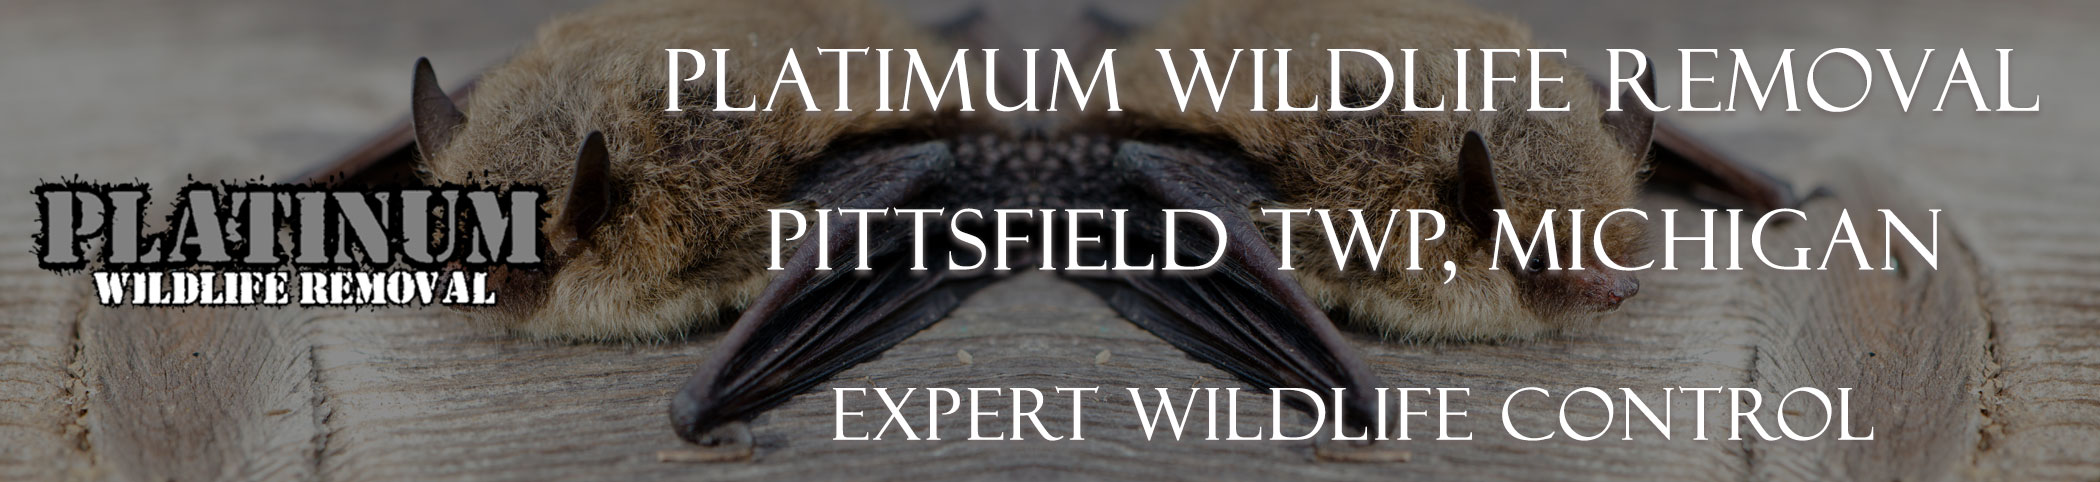 Pittsfield TWP _mich header image at bat removal pro